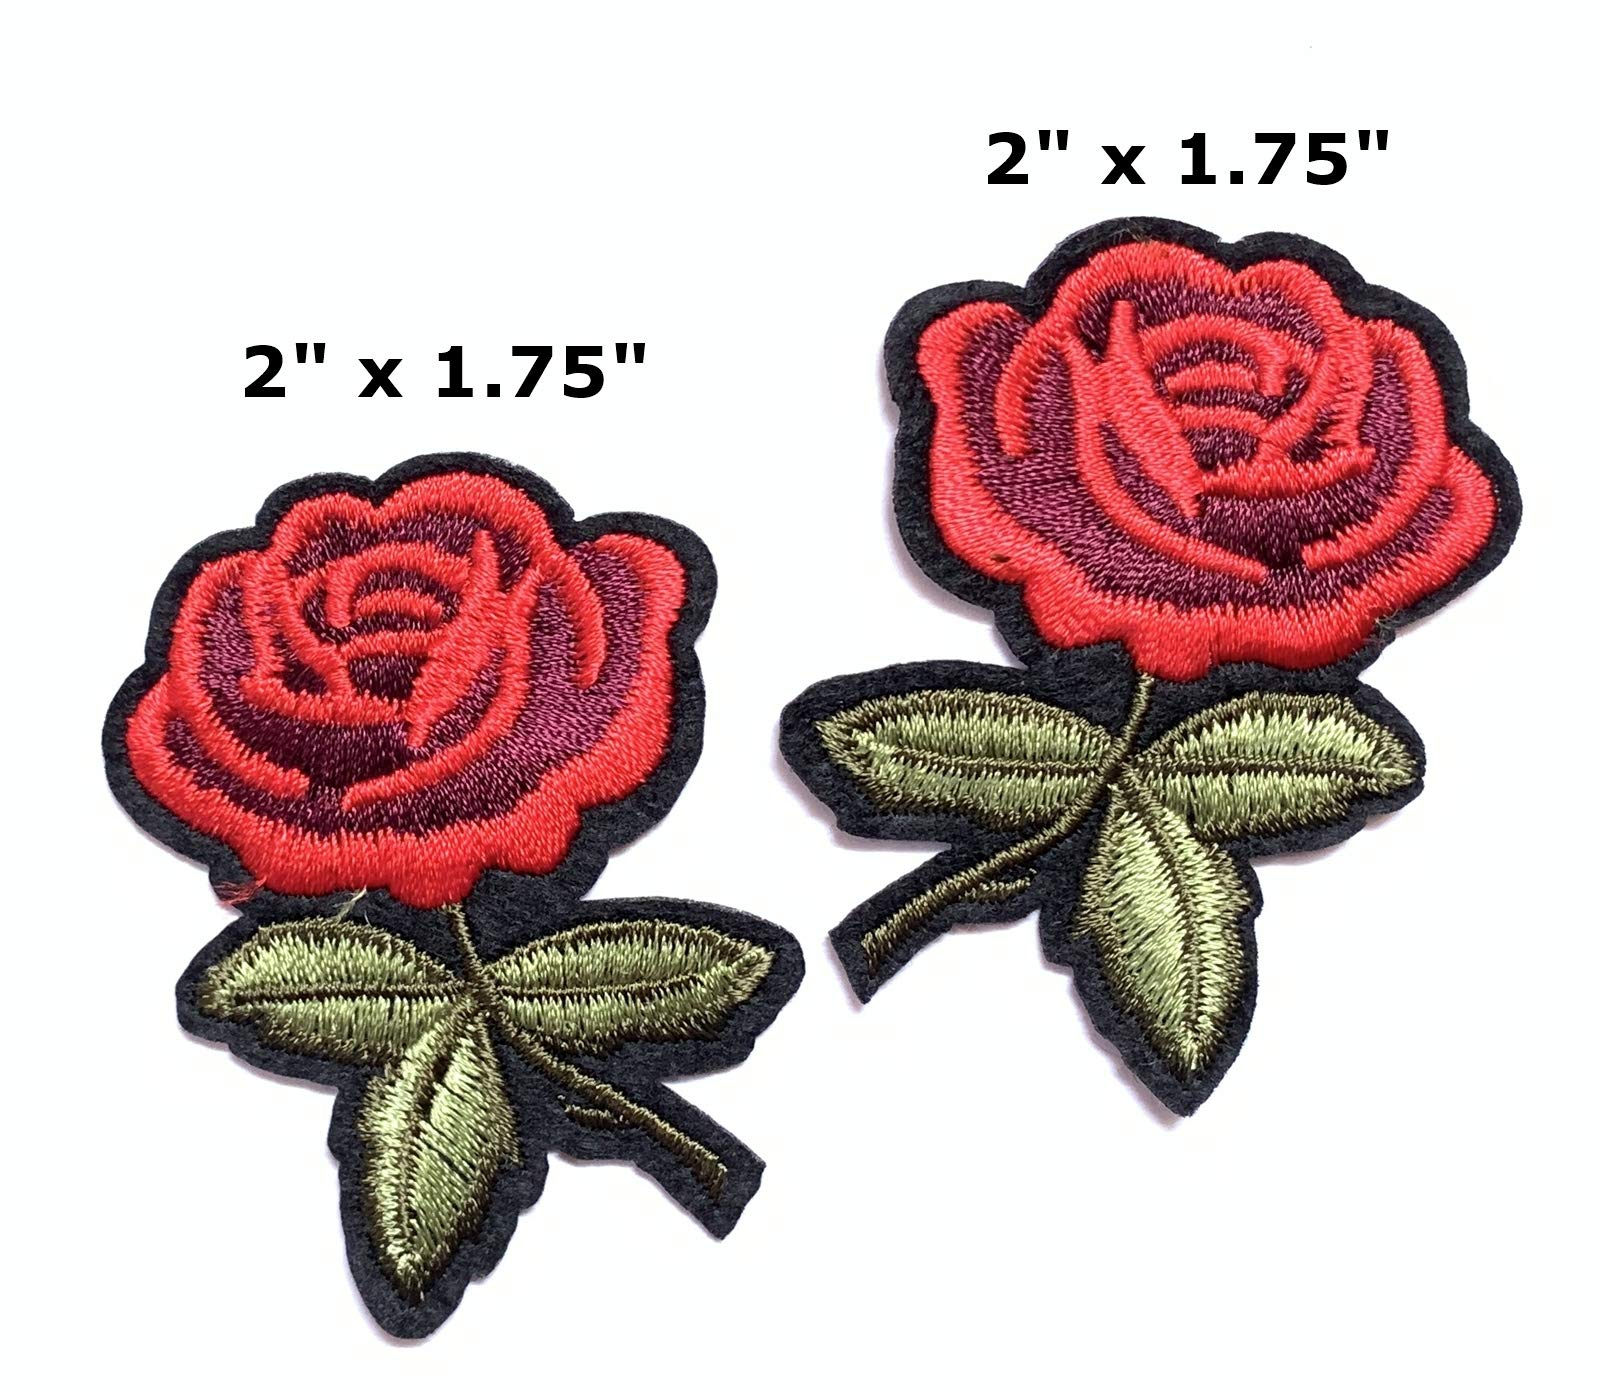 Iron on Patches#33, Red Lips Sequin with 2 Pieces of Rose Flower Embroidered Patches, DIY Badge Patches Clothing Backpacks Jeans T-Shirt Caps Cute Patch by BossBee